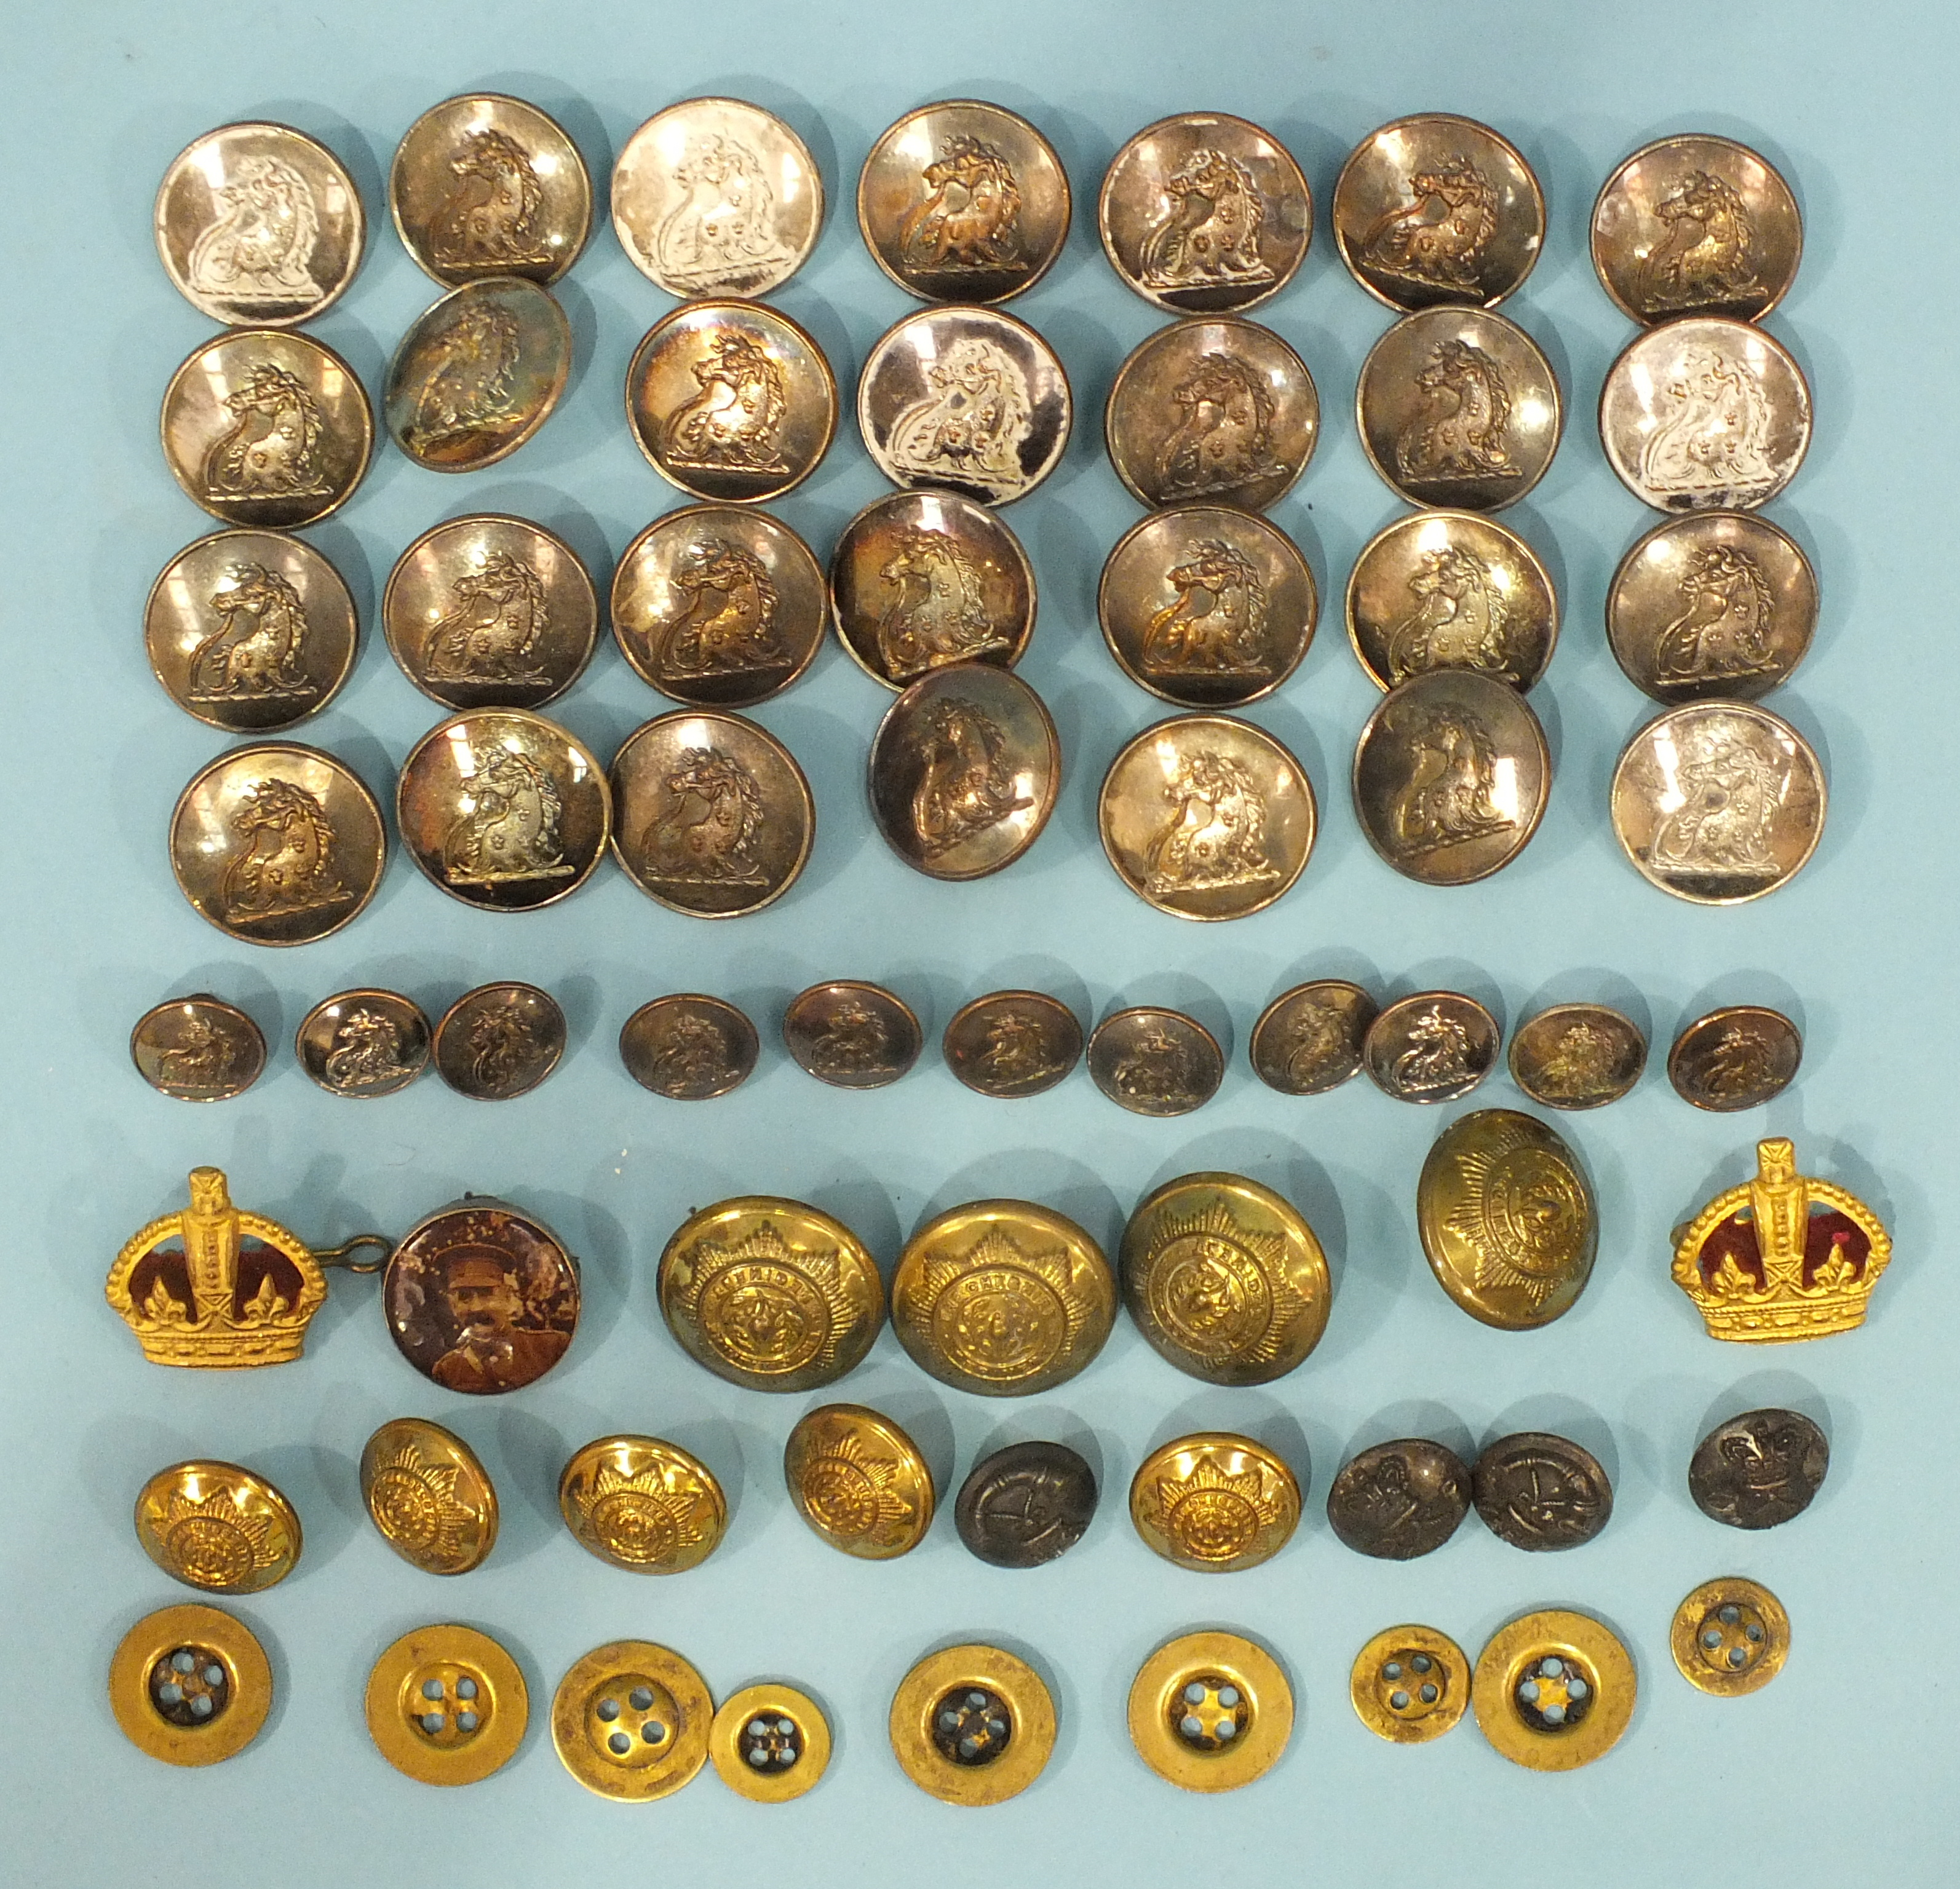 Lot 213 - A collection of silver-plated livery buttons marked 'Firmin & Sons Ltd, 10 St Martins Lane', with